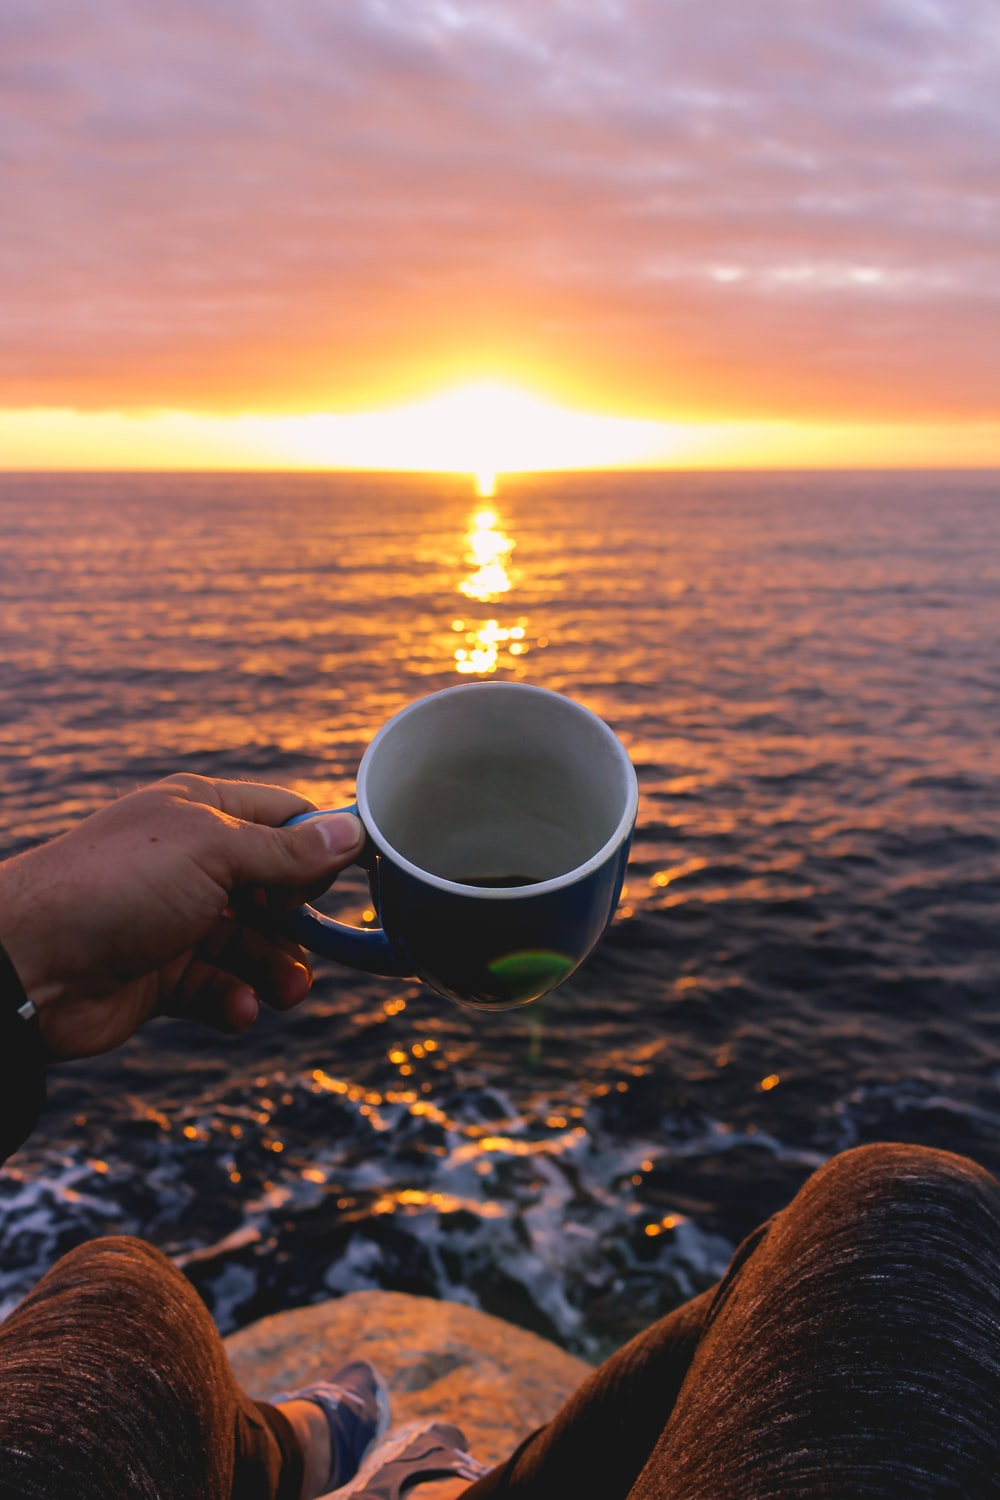 person holding blue cup looking at sunset